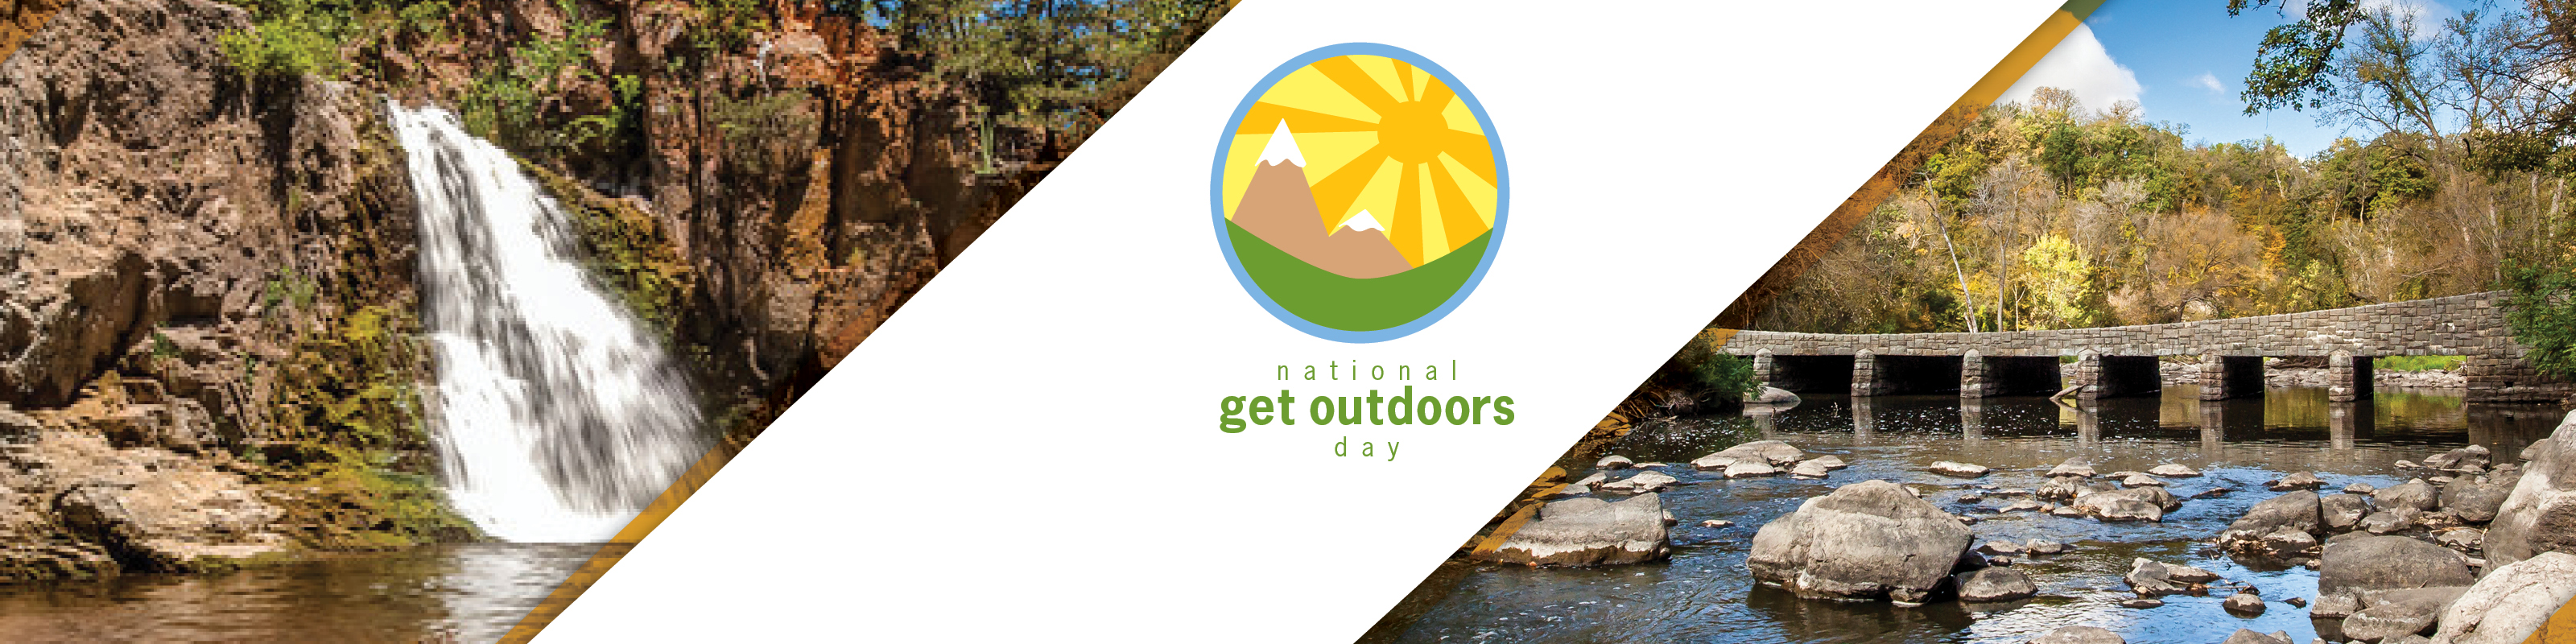 National Get Outdoors Day graphic